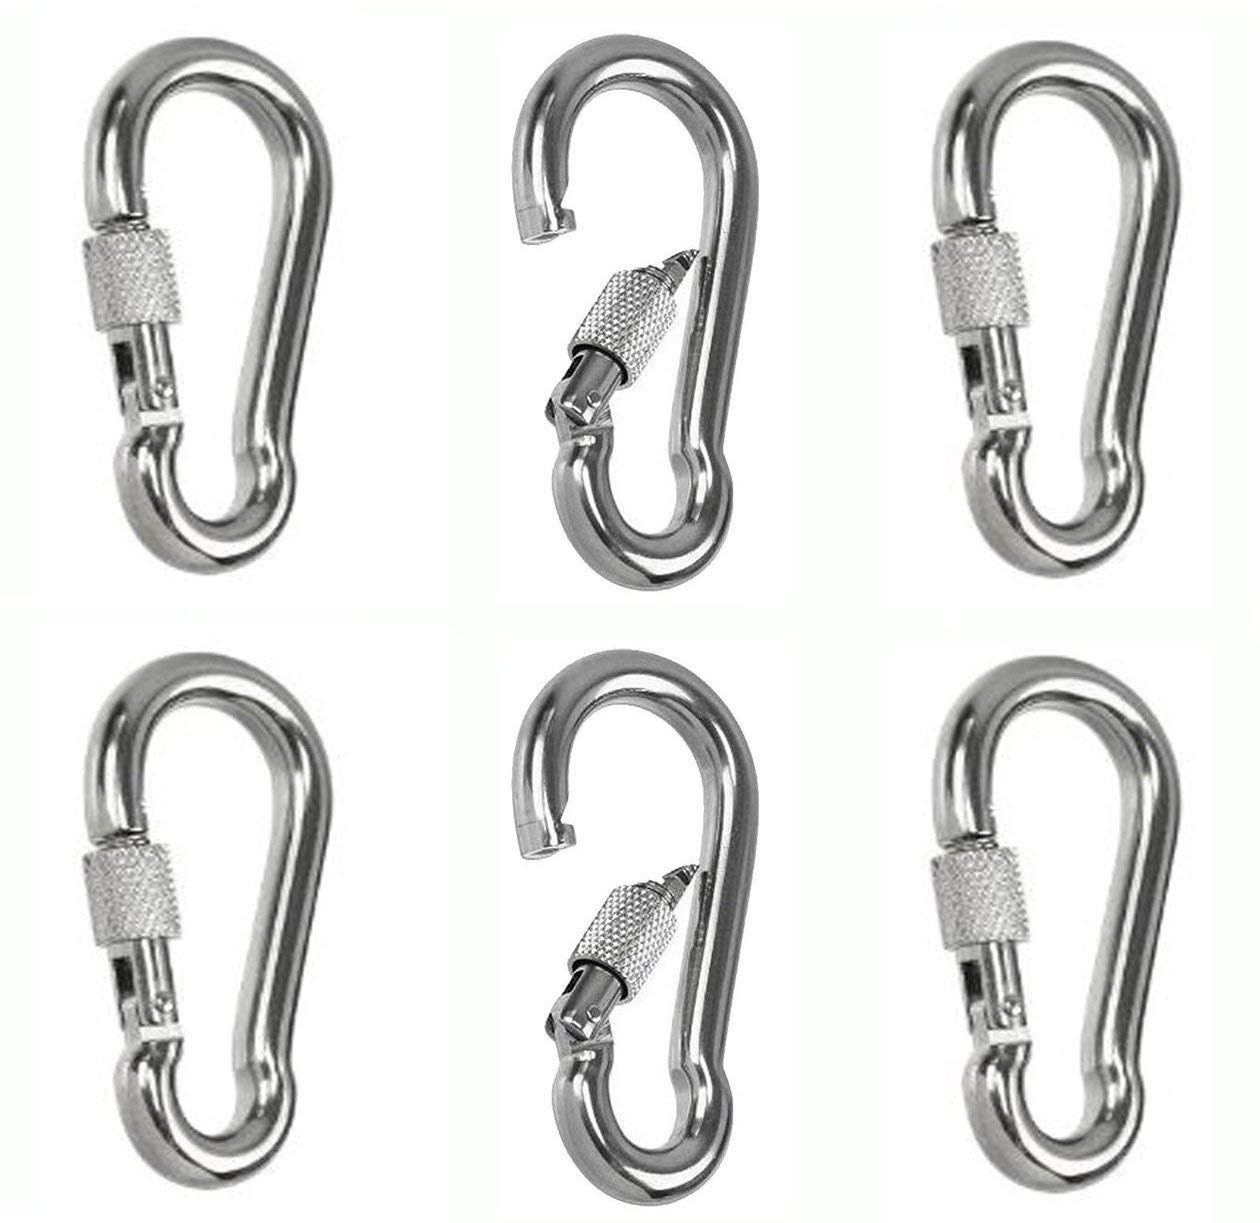 Mydio Set of 16 Silver Spring Snap Hook Stainless Steel 304 Clip Keychain